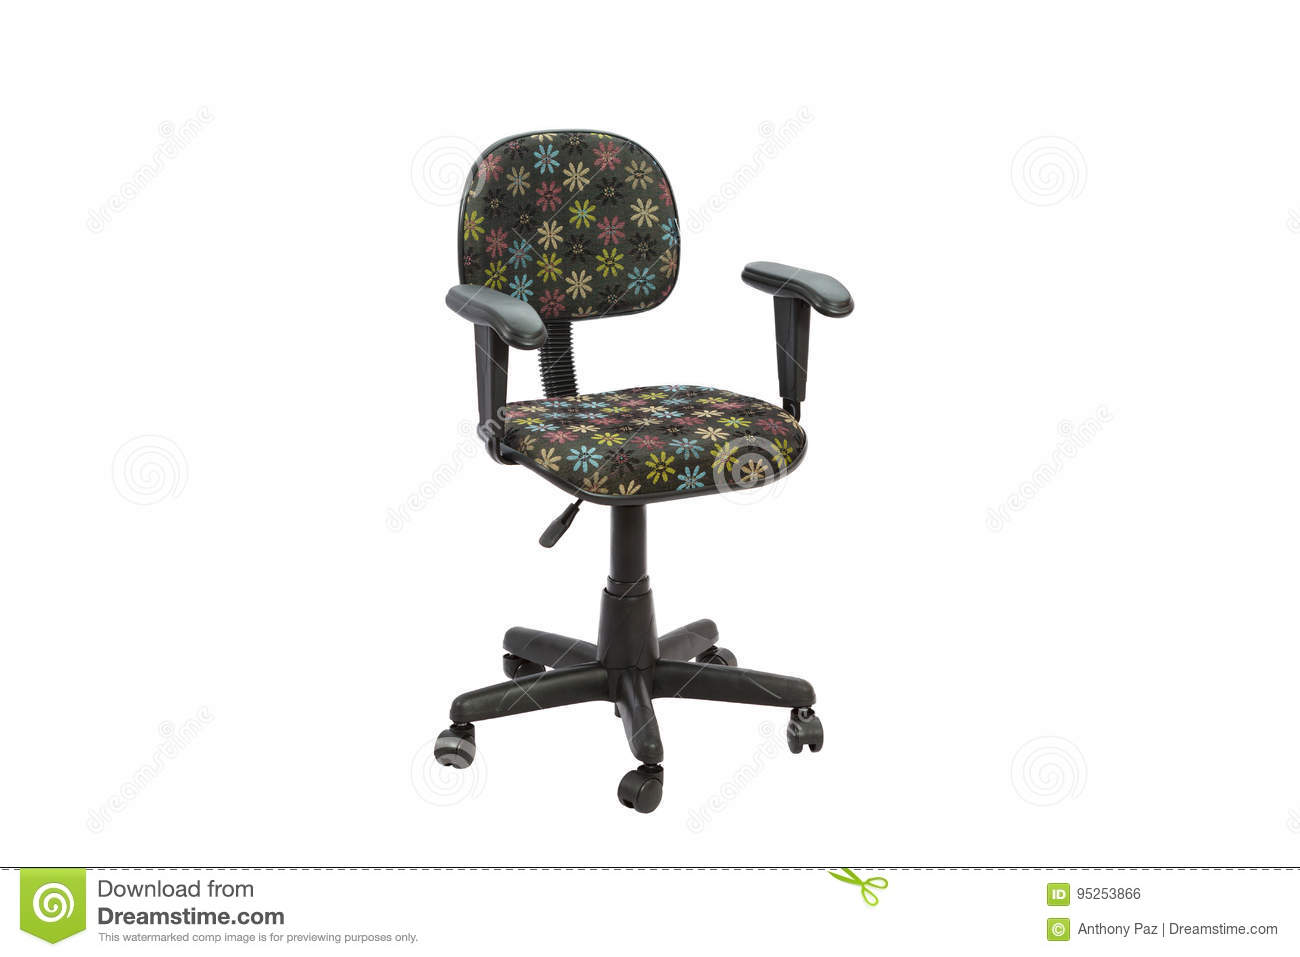 release date 4cd5f 50b82 Black Floral Office A Chair Stock Photo - Image of equipment ...